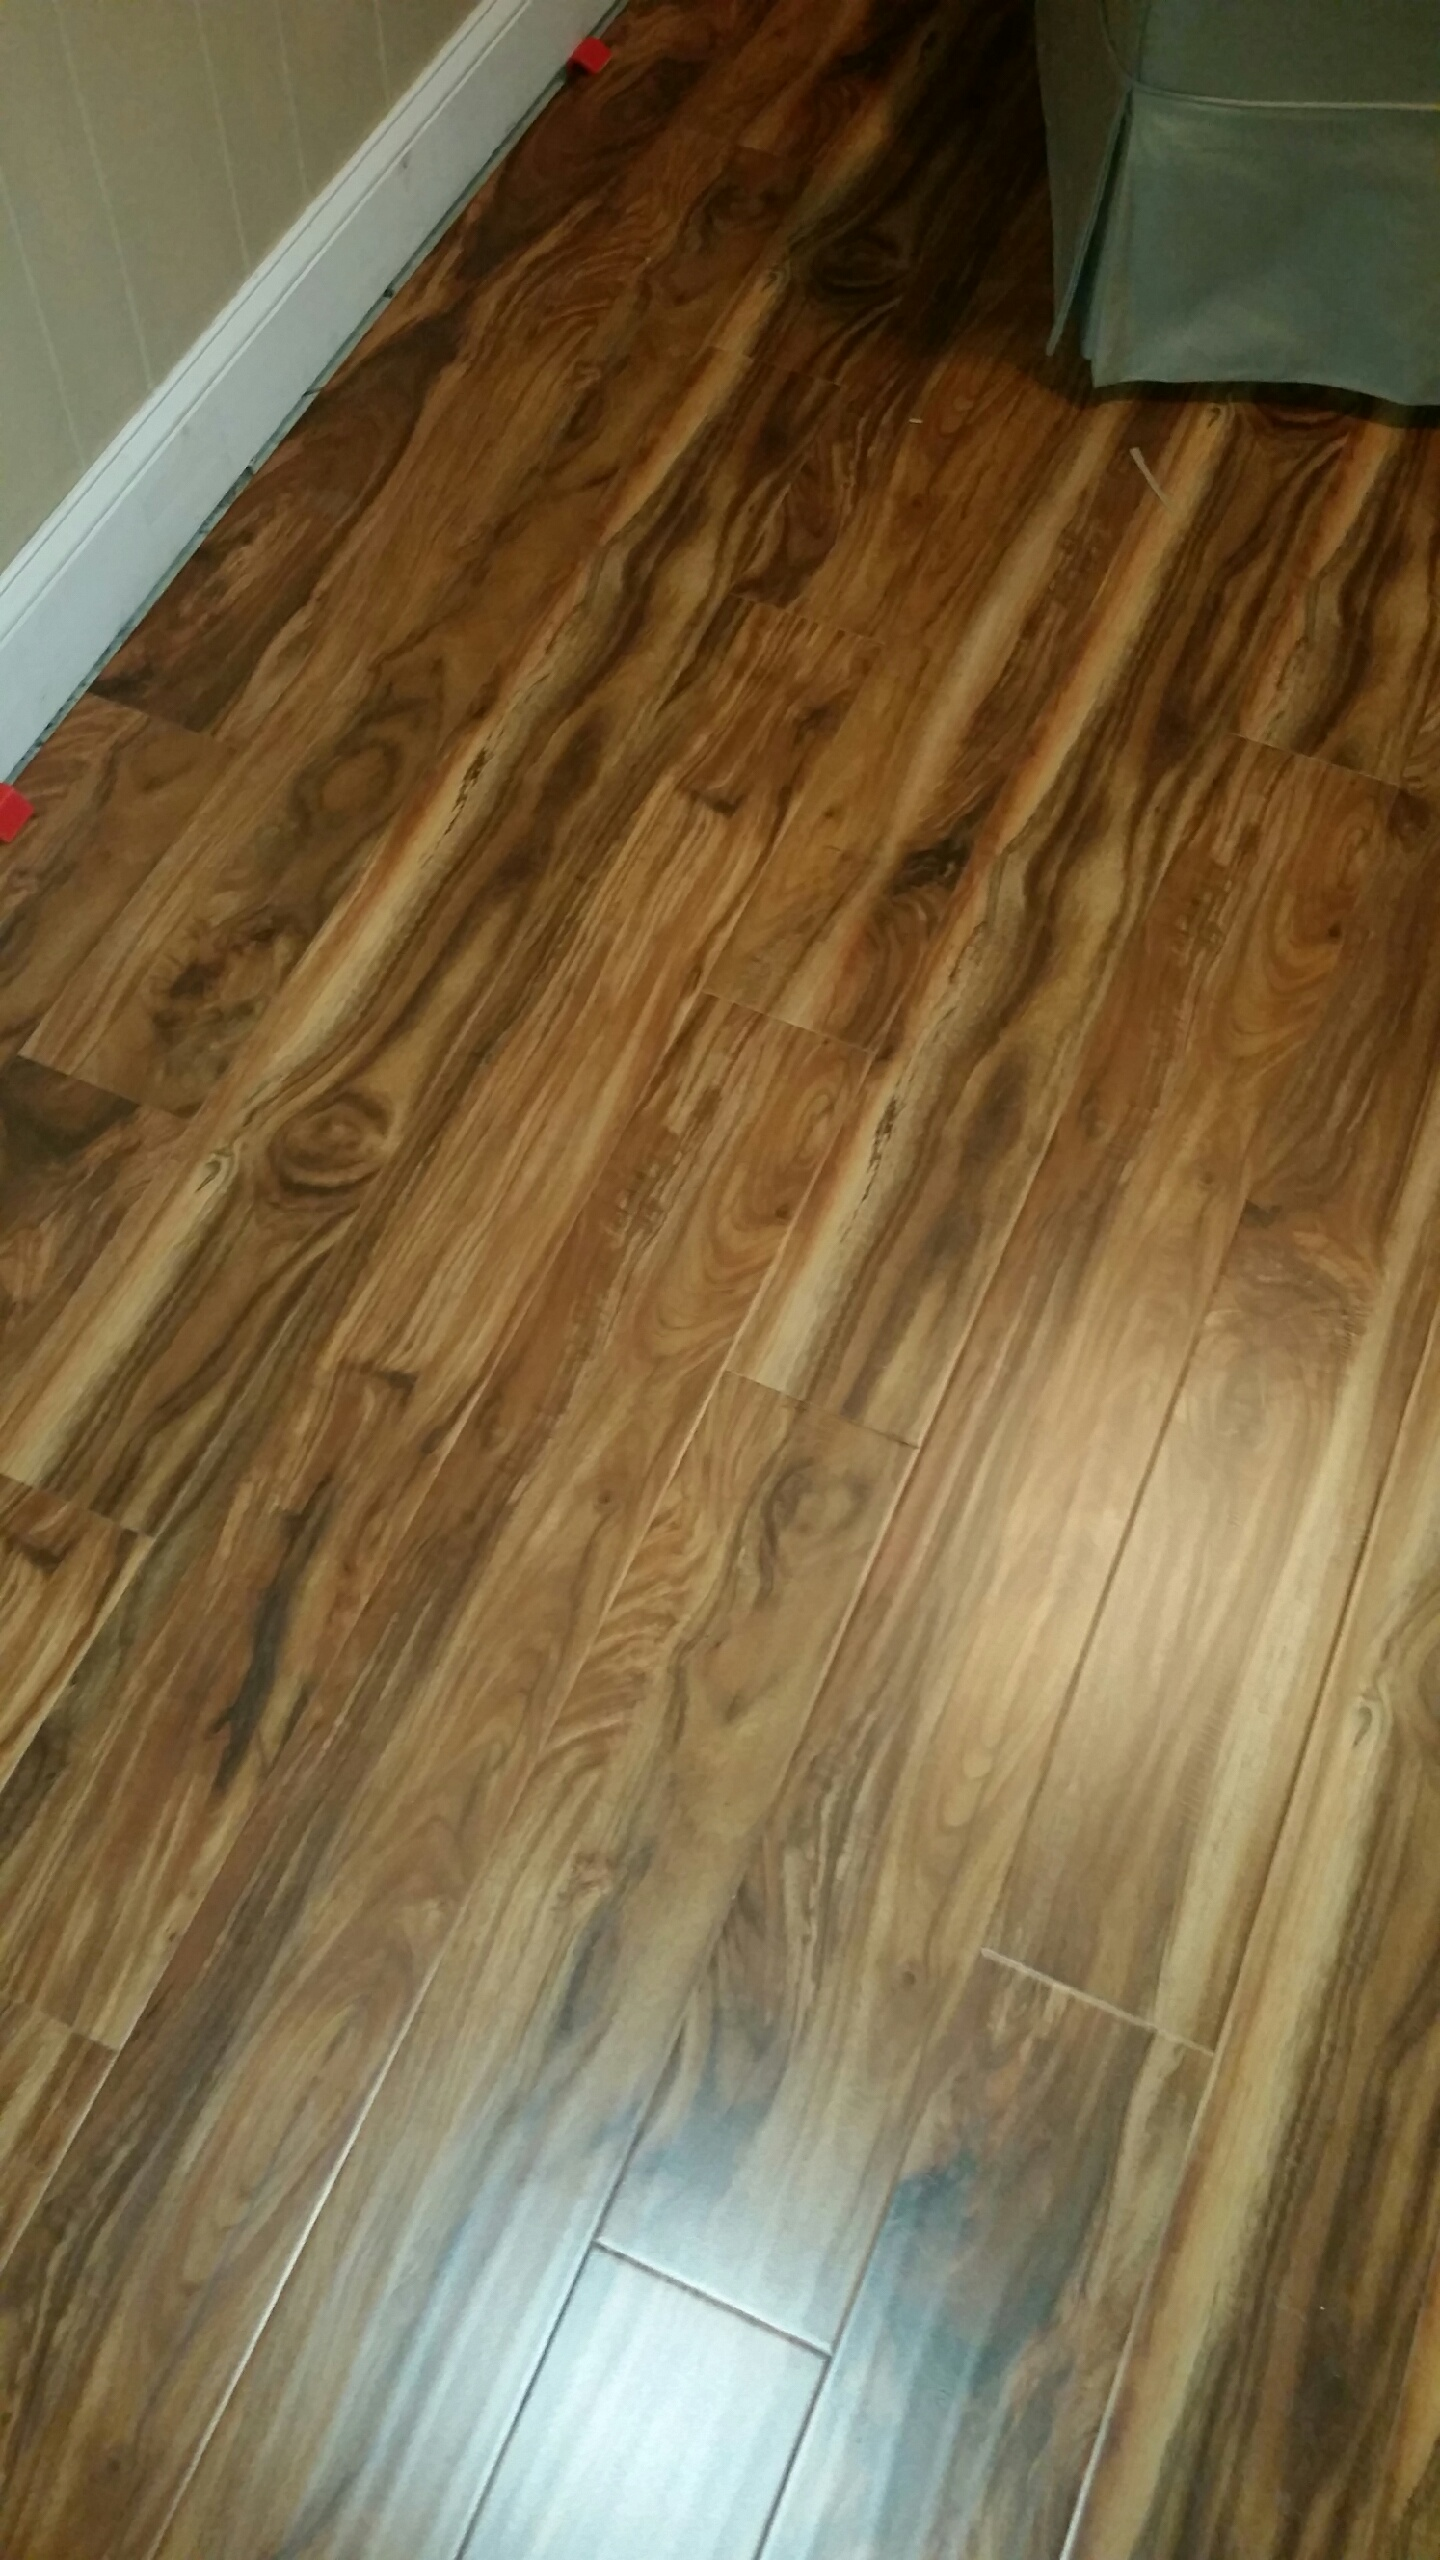 Laminate Flooring Installation Off Normandy Blvd In West